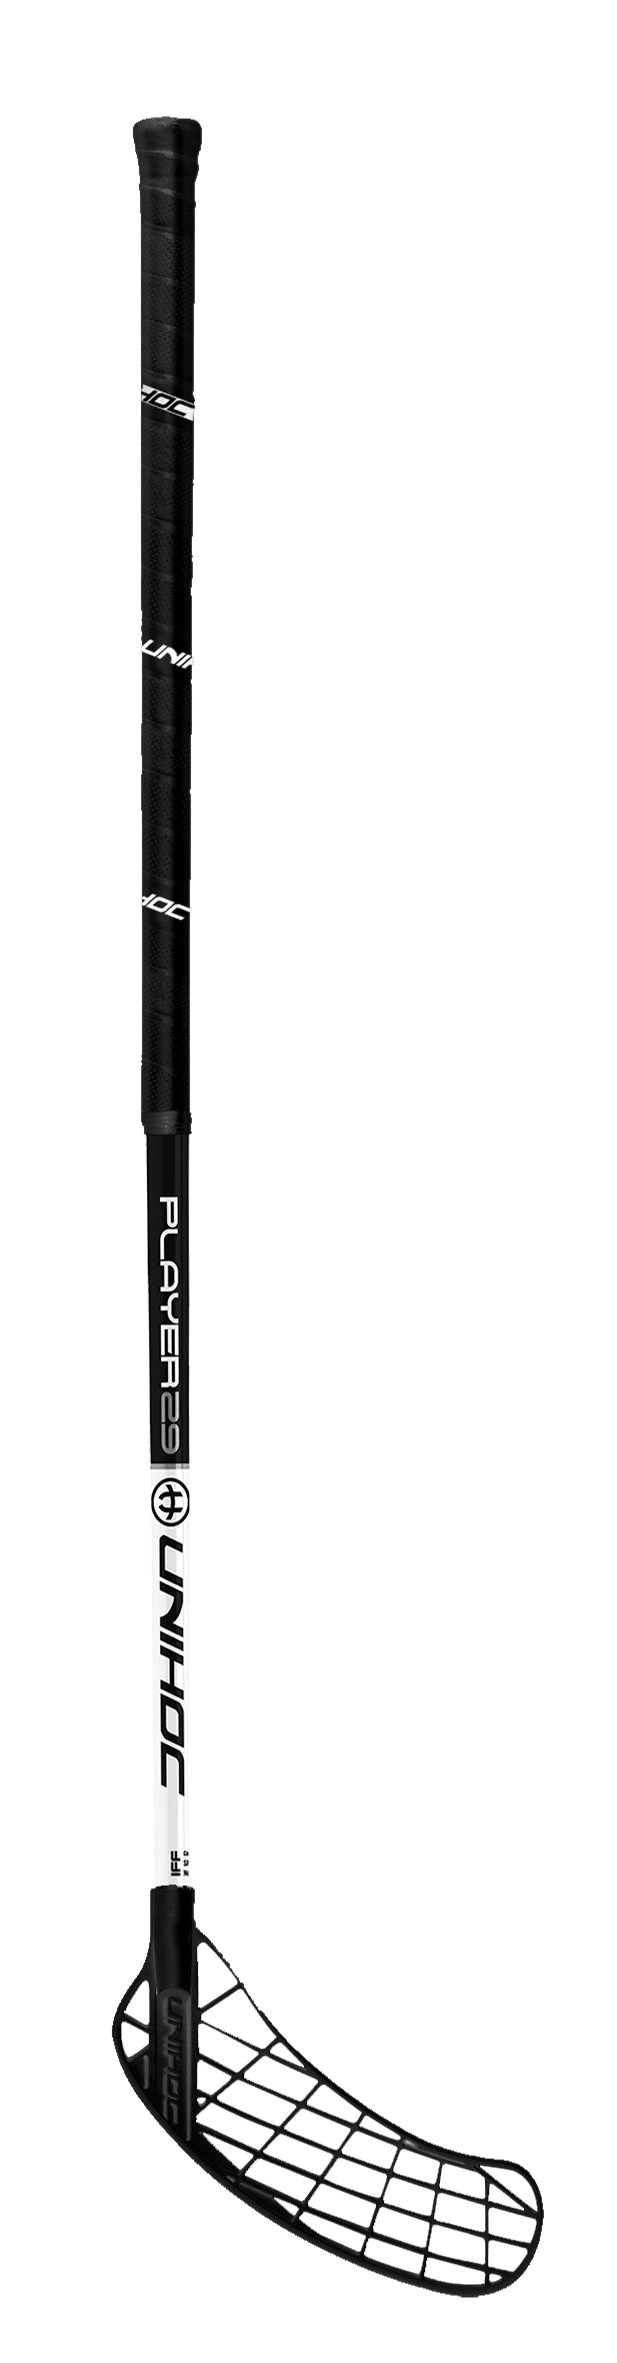 Unihoc Player 29 inkl. Player Blade Bastone senior 100 cm